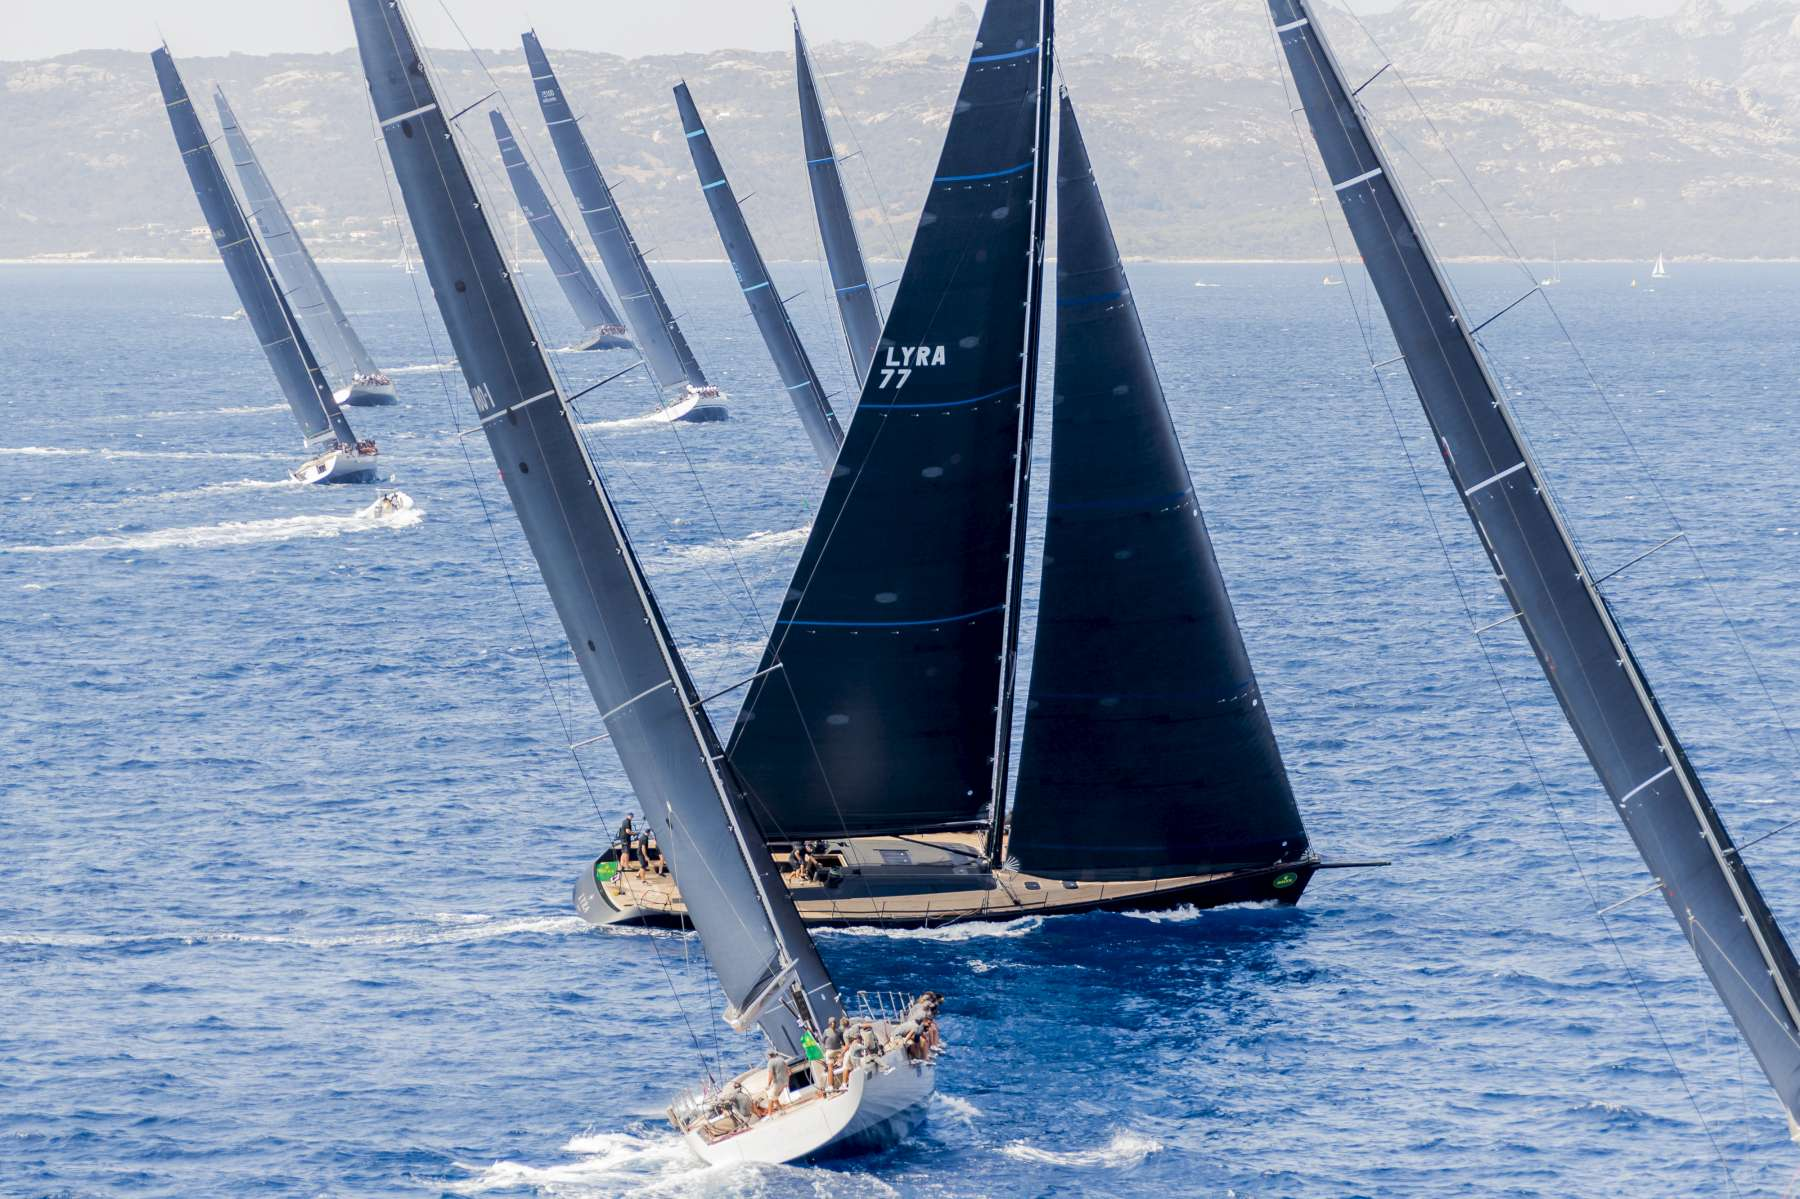 Maxi Yacht Rolex Cup & Rolex Maxi 72 Worlds - Images race Day 5 online - NEWS - Yacht Club Costa Smeralda